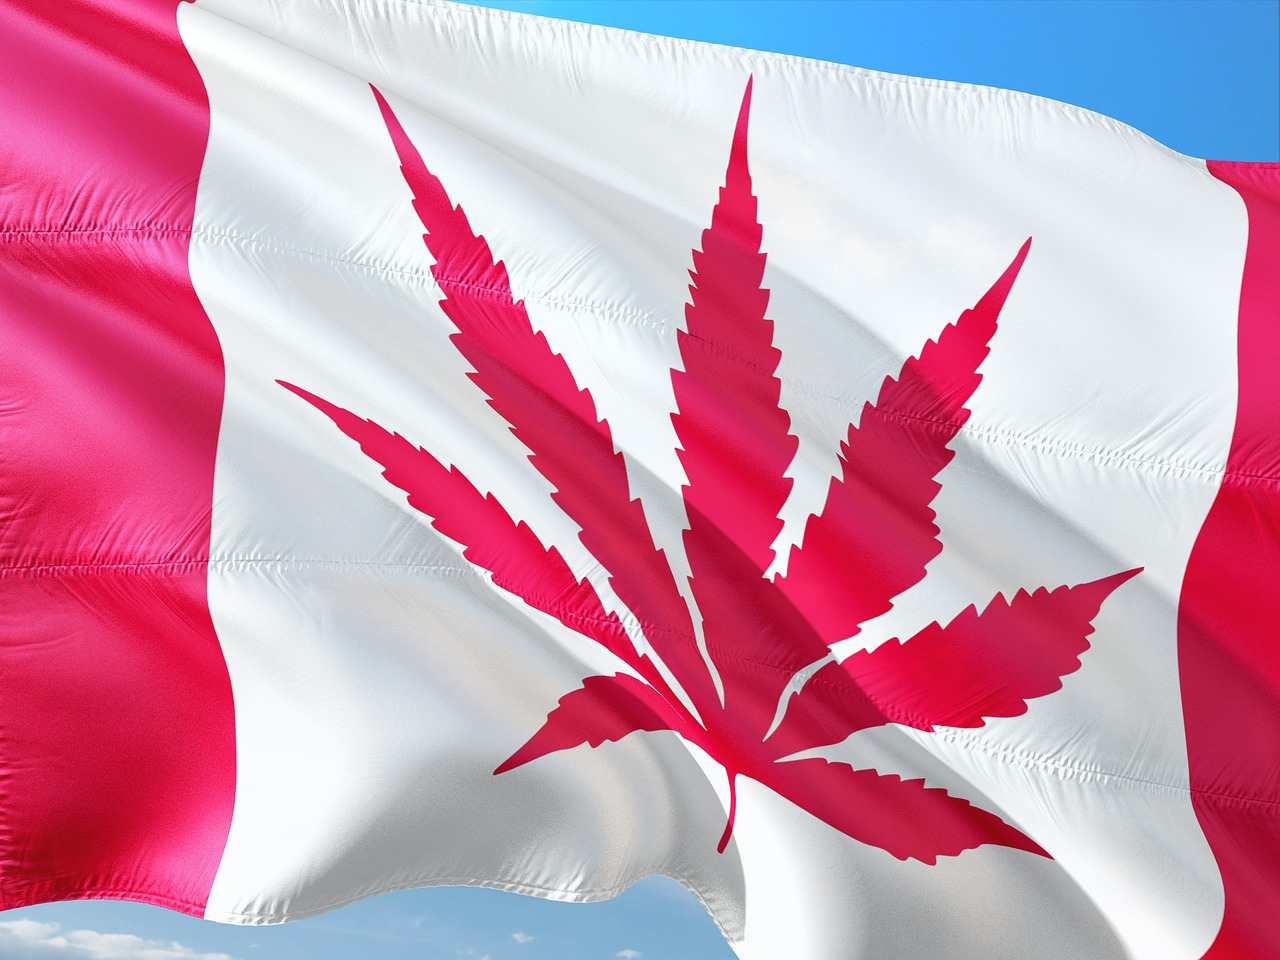 Flag of Canada with cannabis leaf replacing maple leaf, showing legalization of marijuana.